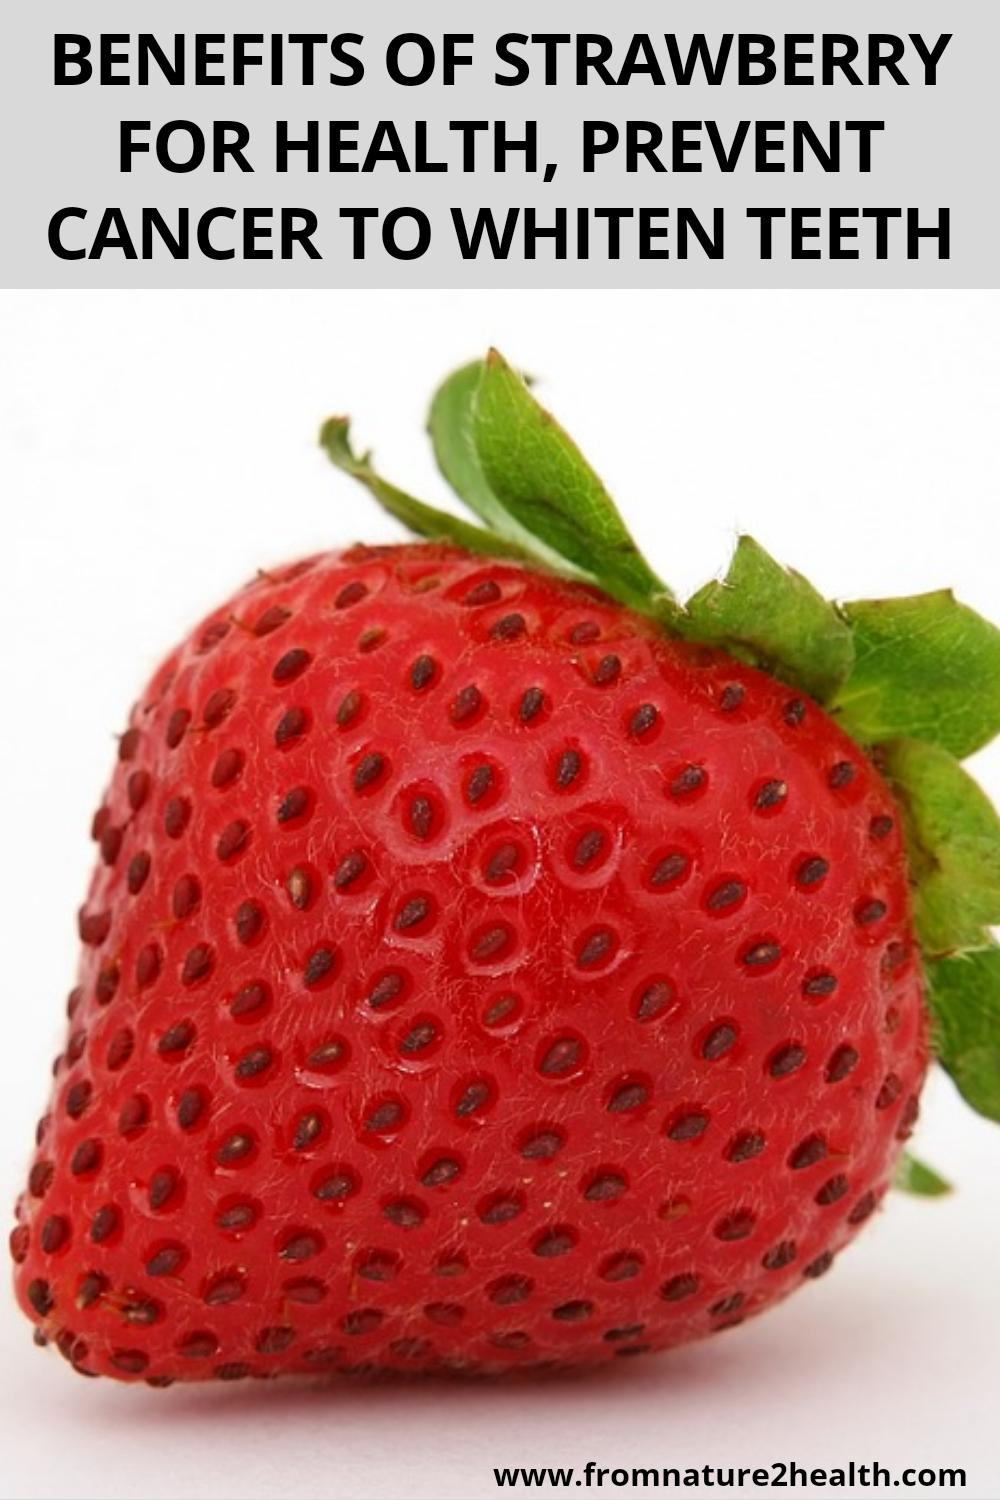 Benefits of Strawberry for Health, Prevent Cancer to Whiten Teeth